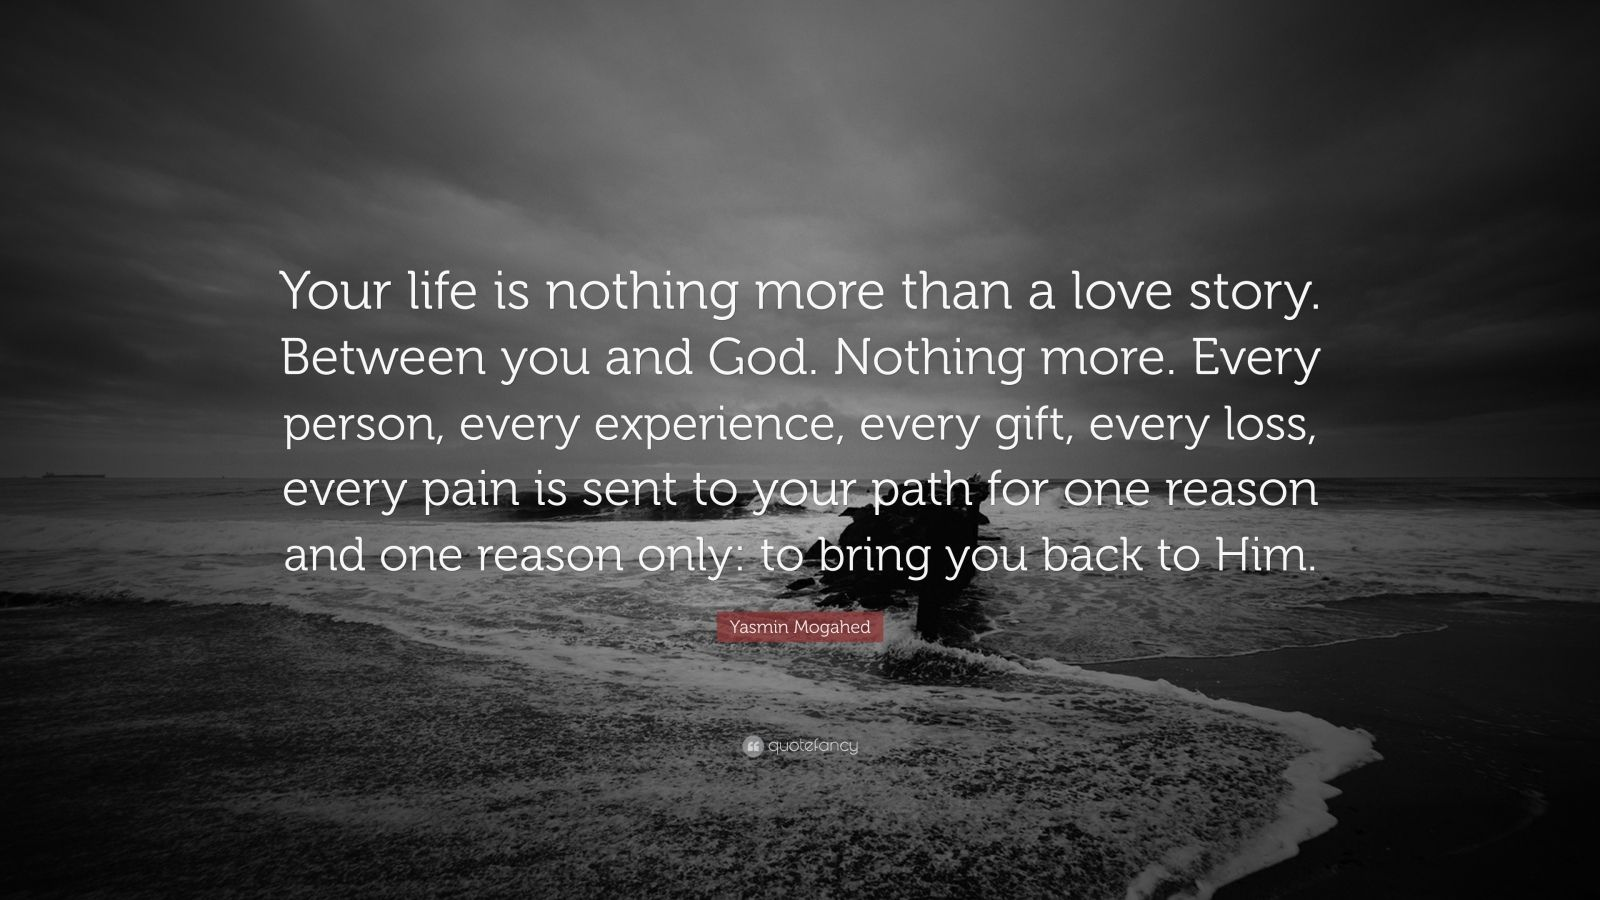 "Yasmin Mogahed Quote: ""Your life is nothing more than a love story. Between you and God. Nothing more. Every person, every experience, every gift, every loss, every pain is sent to your path for one reason and one reason only: to bring you back to Him."""